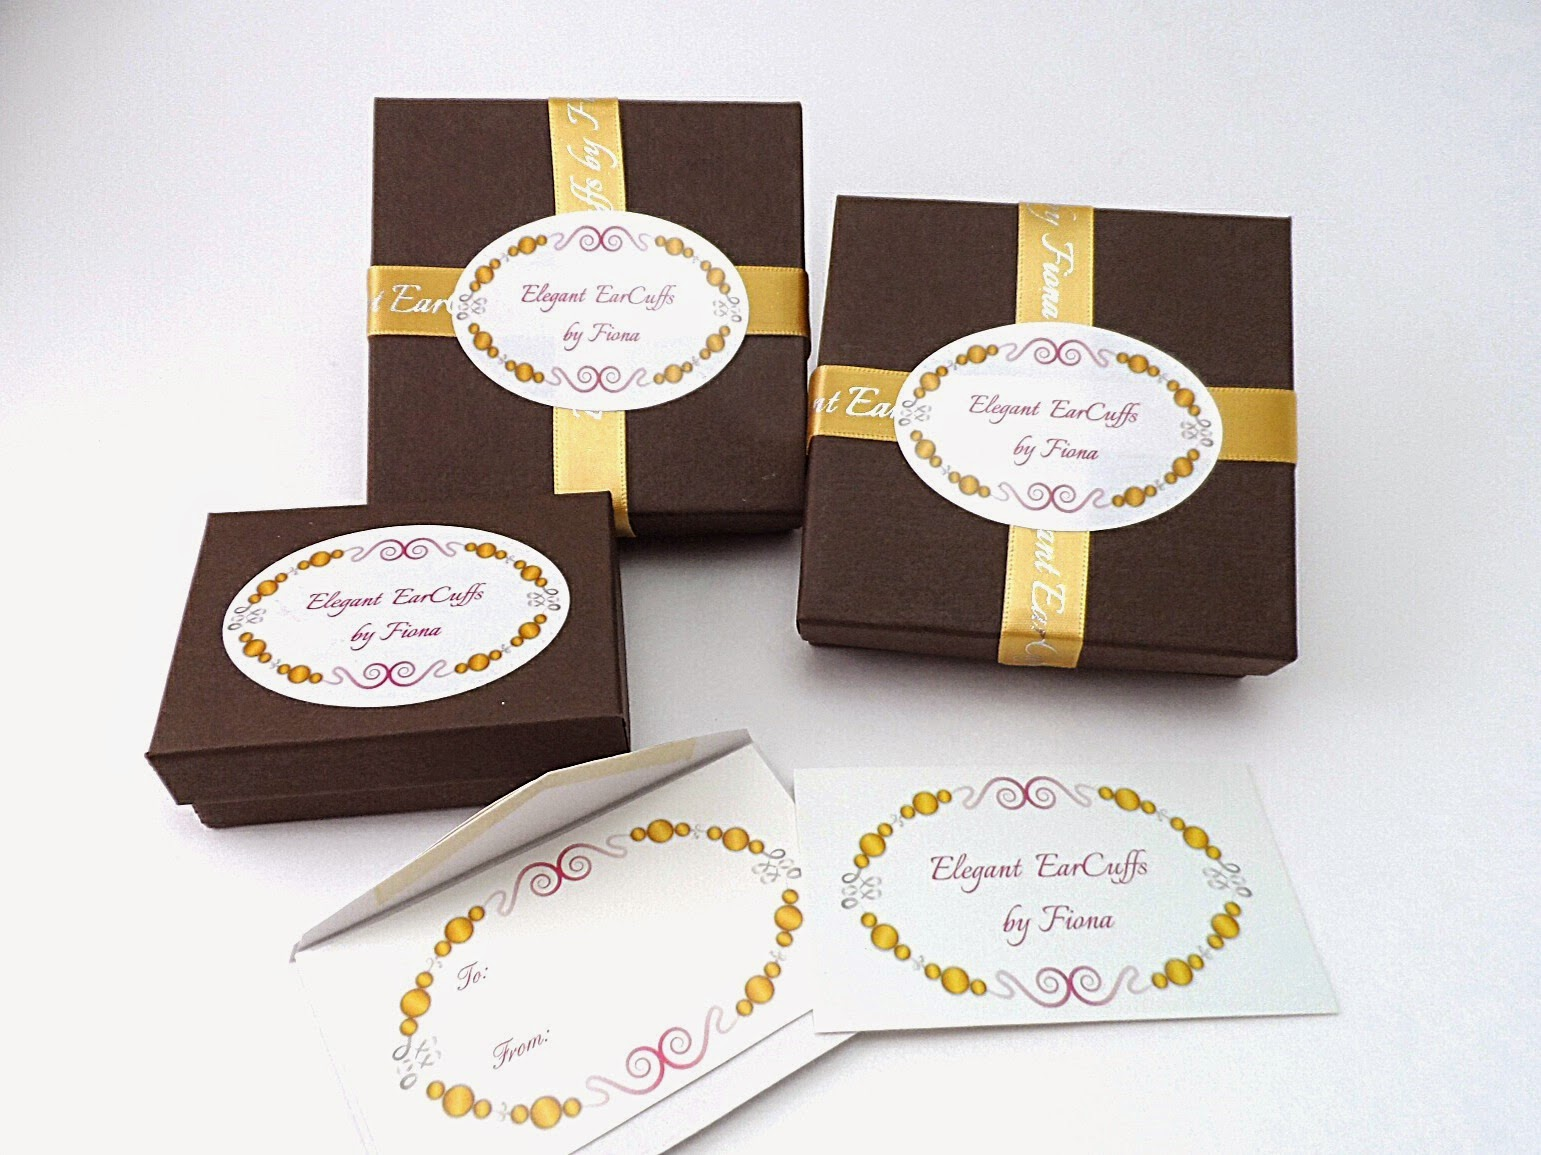 New packaging and Gift Tags from Elegant EarCuffs by Fiona